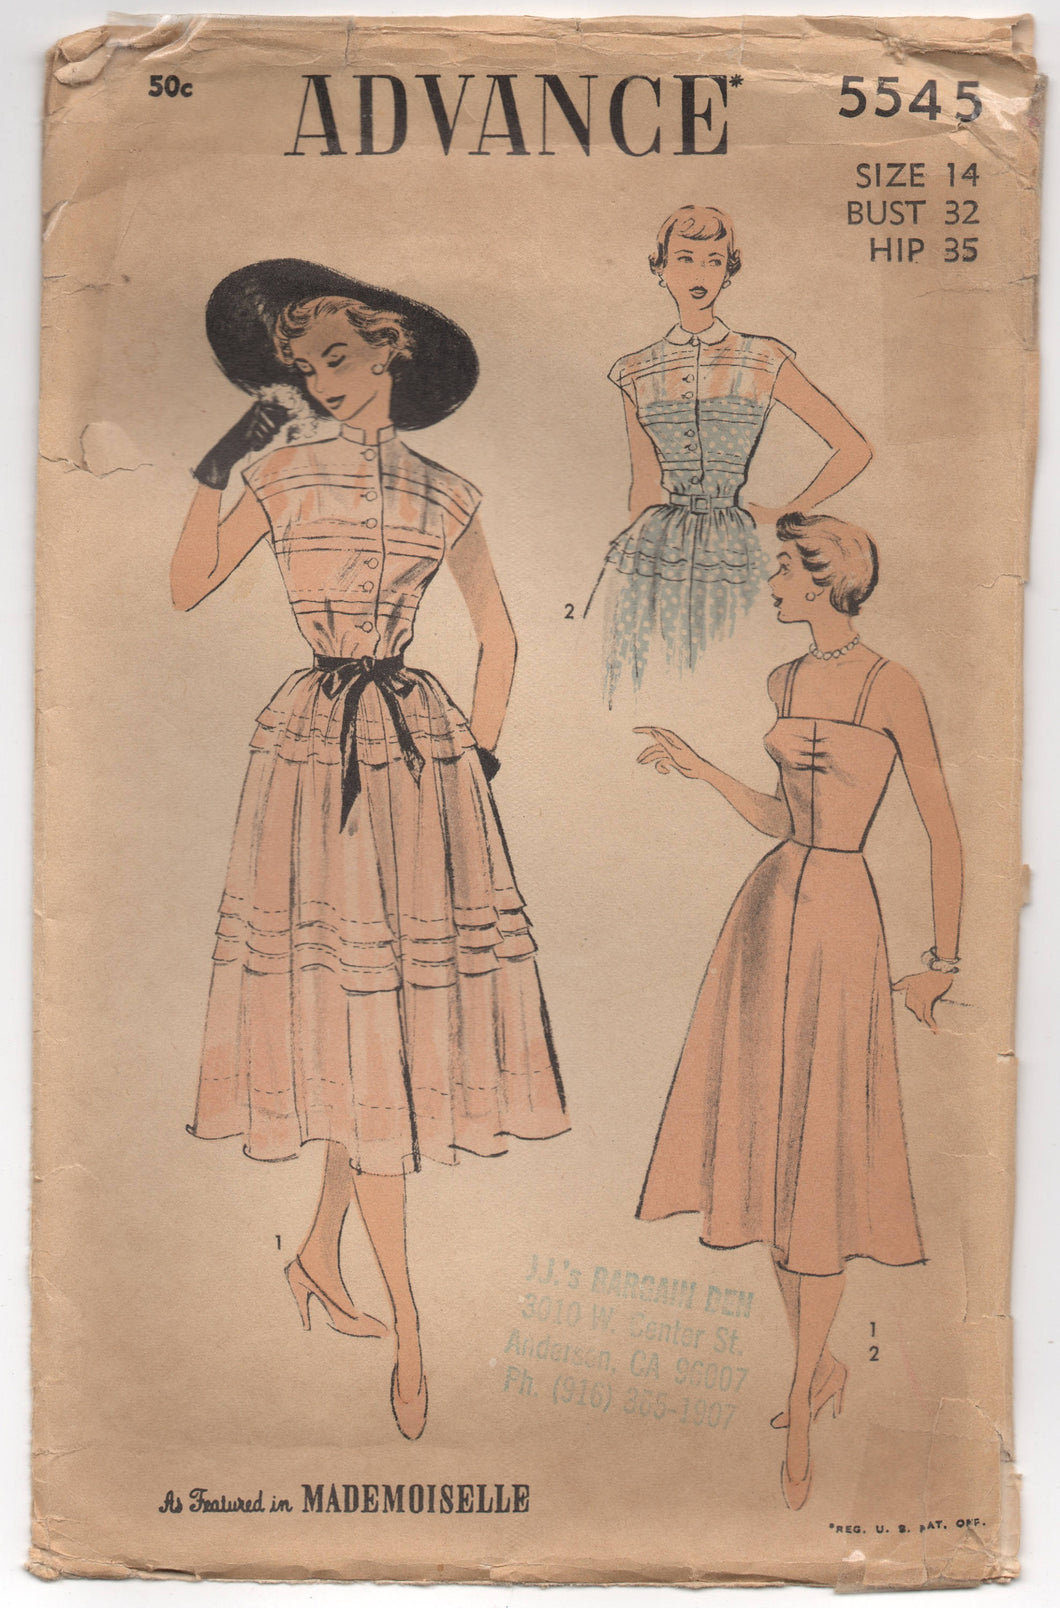 1950's Advance One Piece Dress with Tucked Bodice and Tucked Full Skirt and Slip Pattern - Bust 32